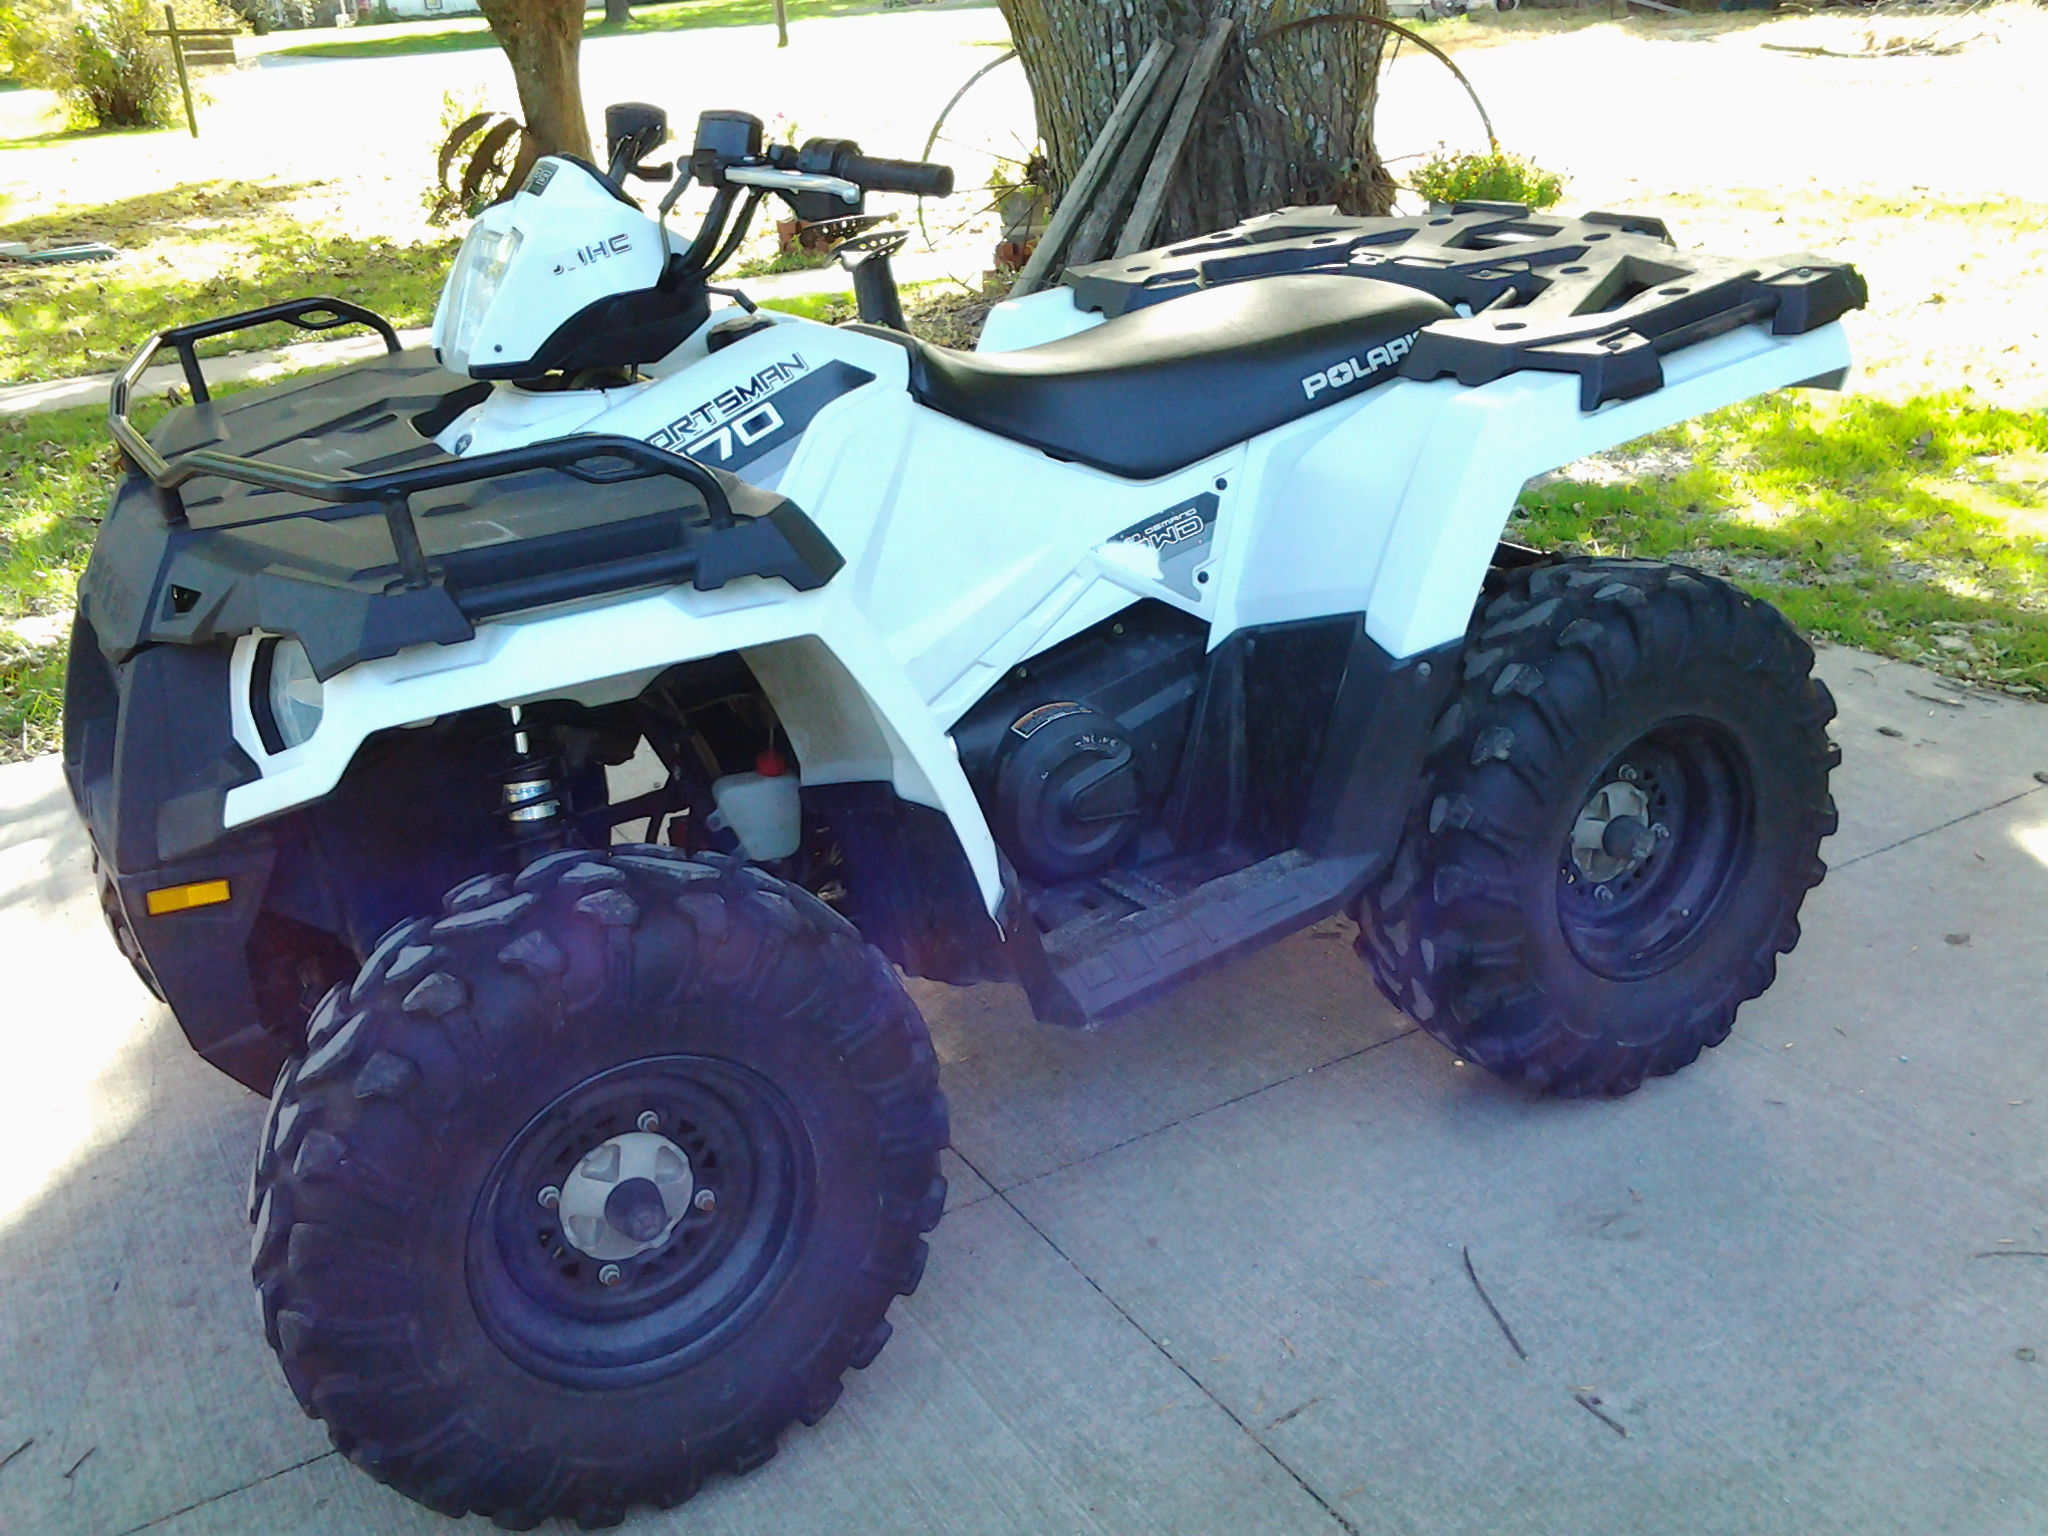 2015 Polaris Sportsman Quad image 1